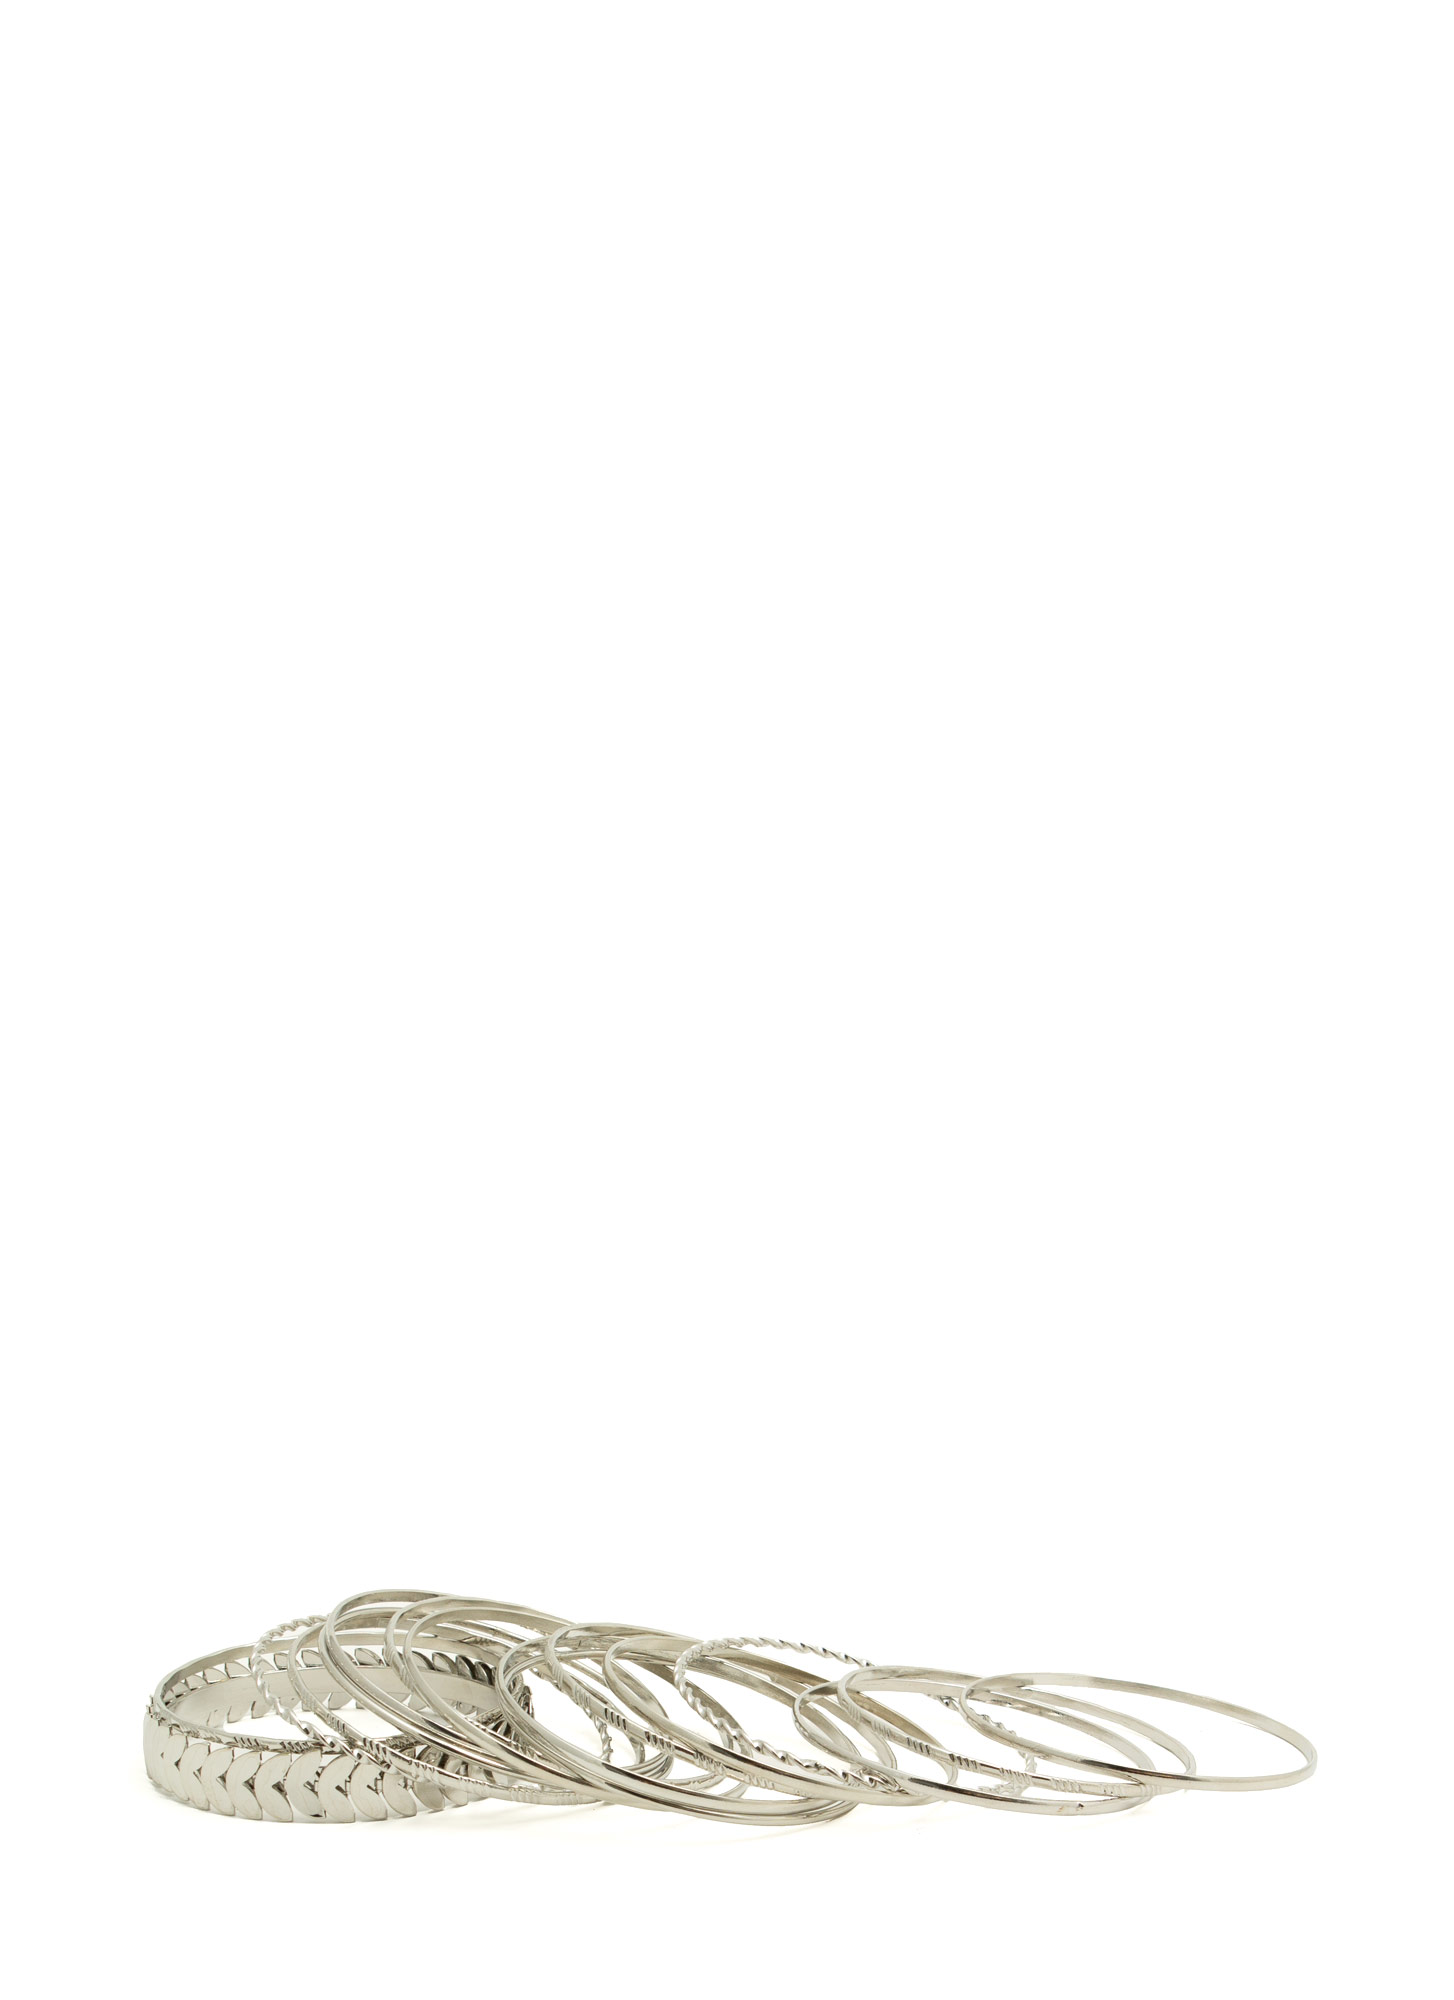 Textured Leaf Metal Bangle Set SILVER